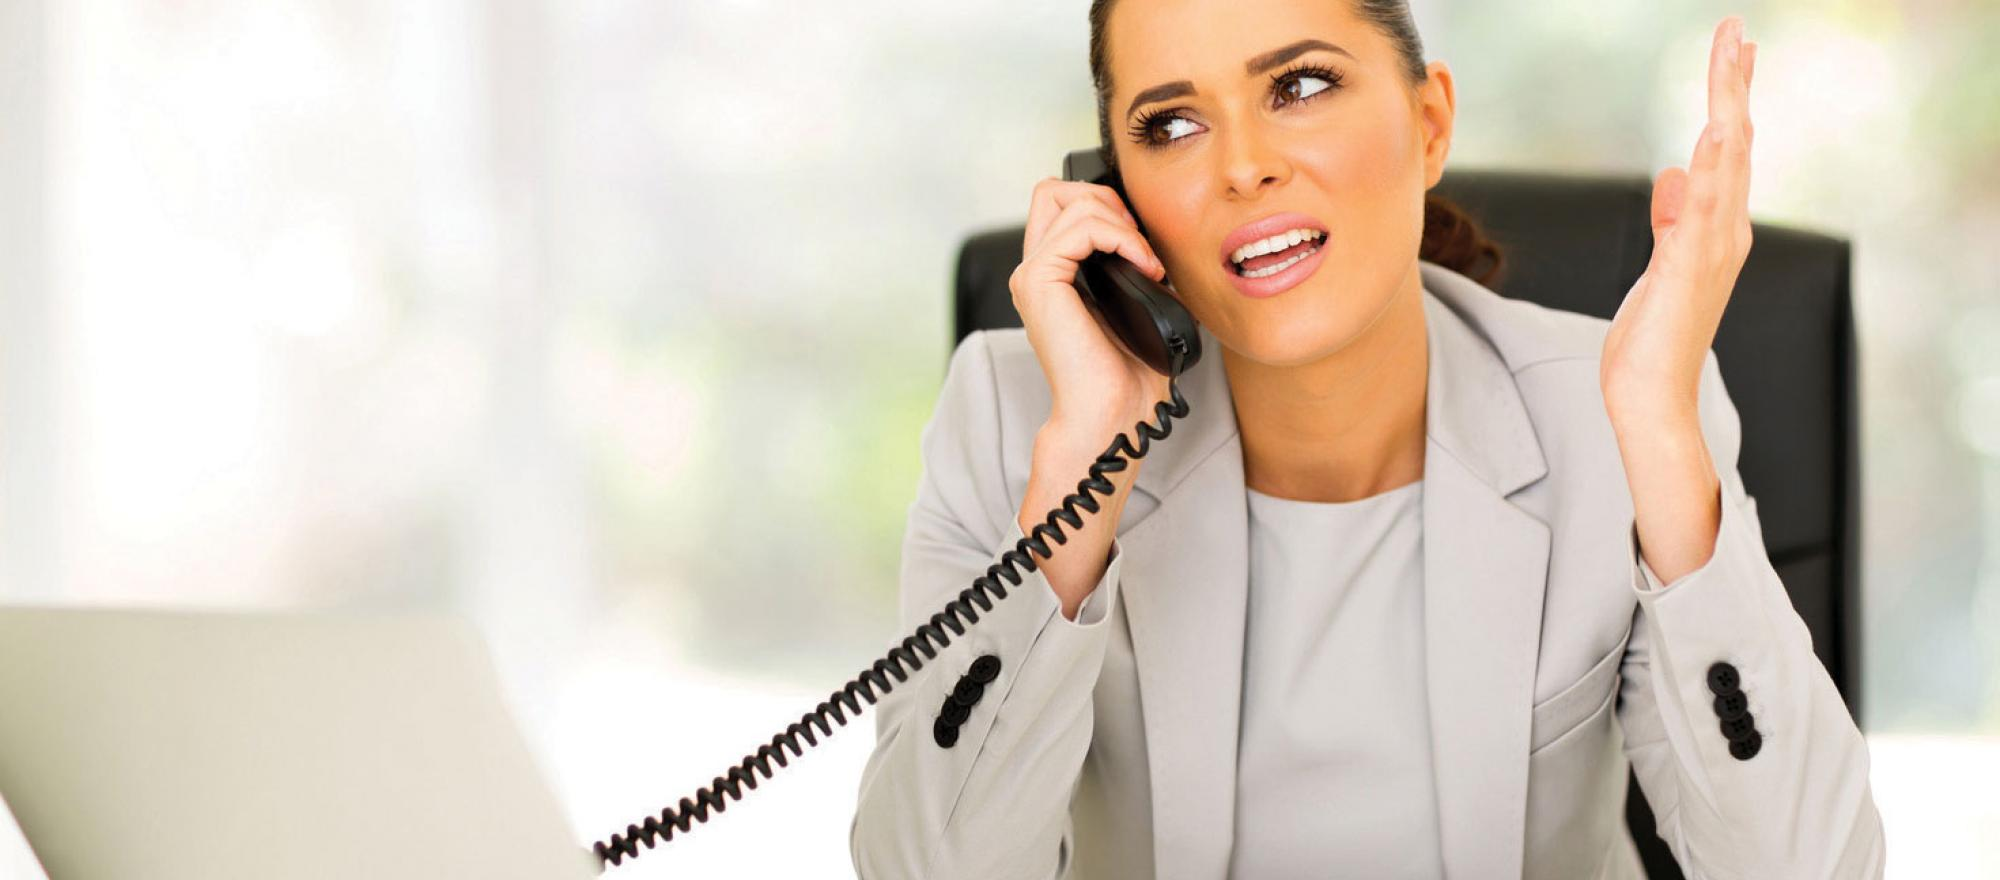 Owner-approval issues can destroy a aircraft broker-client relationship. (Photo: Fotolia)